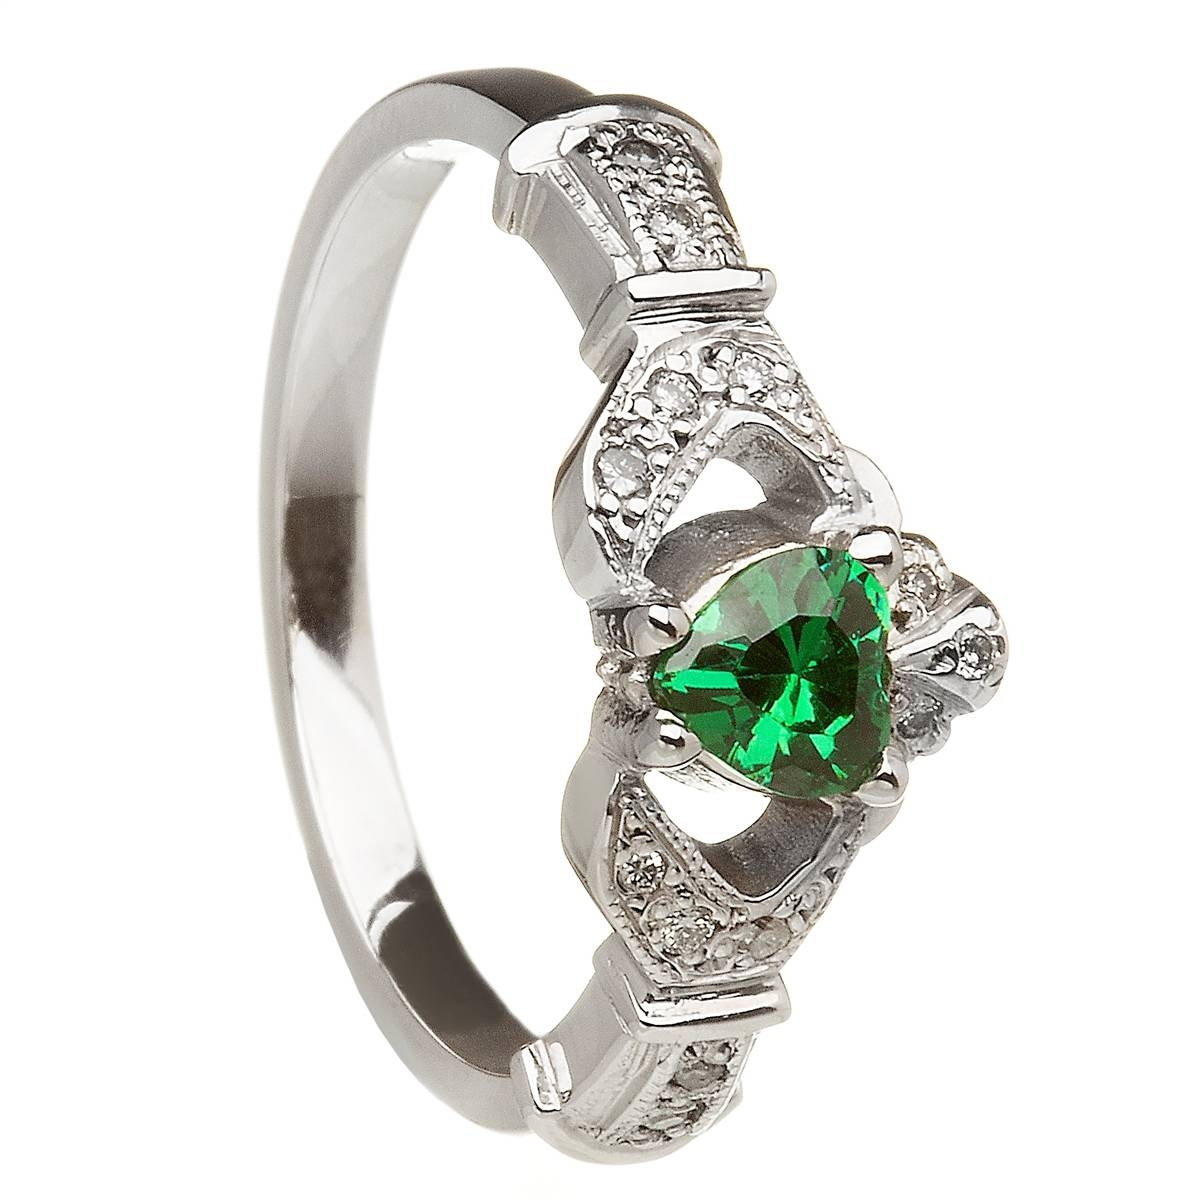 14K White Gold Emerald Set Heart Claddagh Ring & Wedding Ring Set With Regard To Claddagh Rings Engagement Diamond (View 15 of 15)